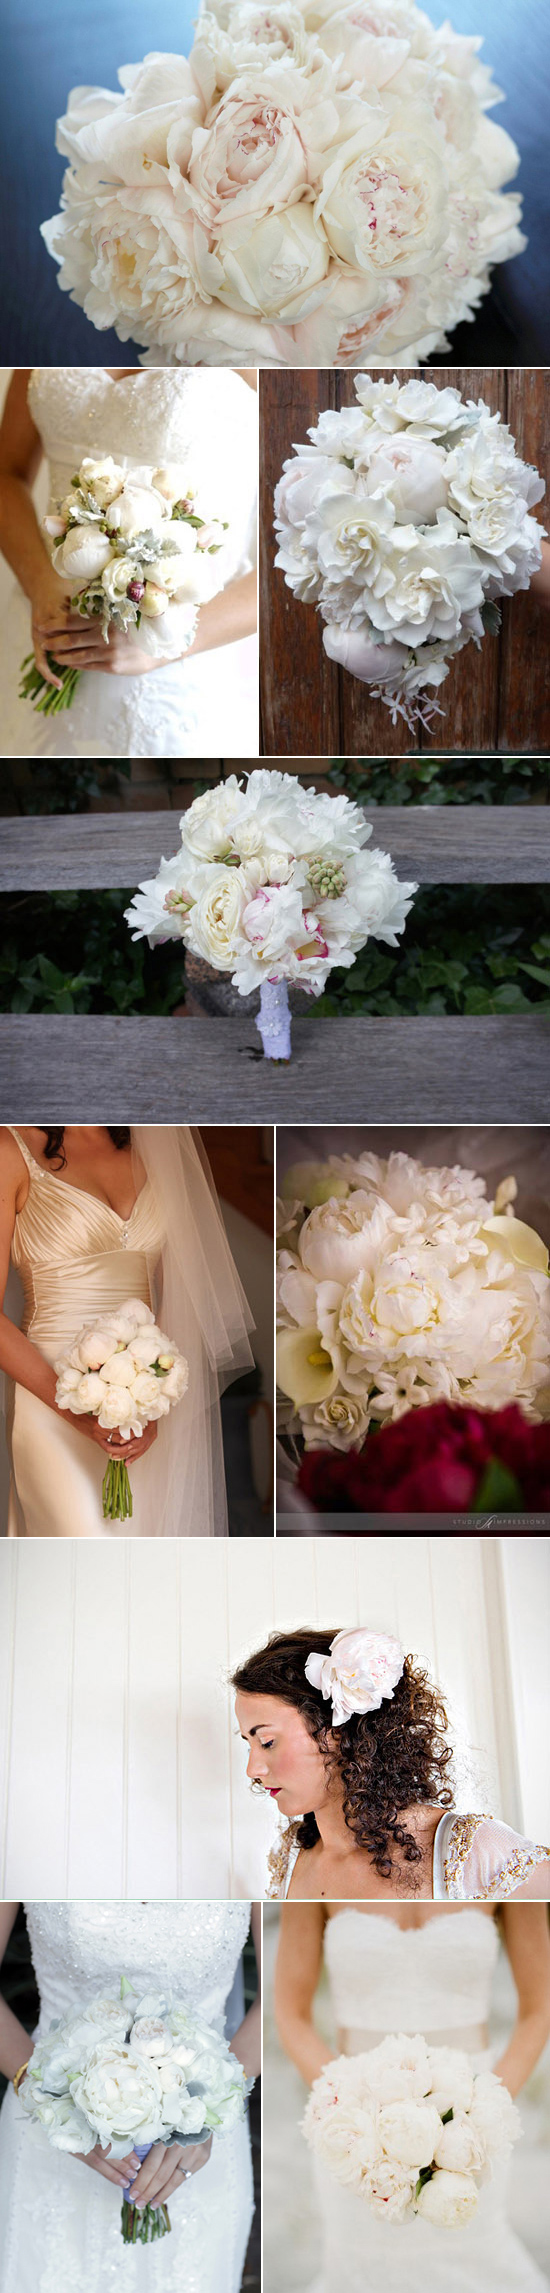 white peonies wedding inspiration